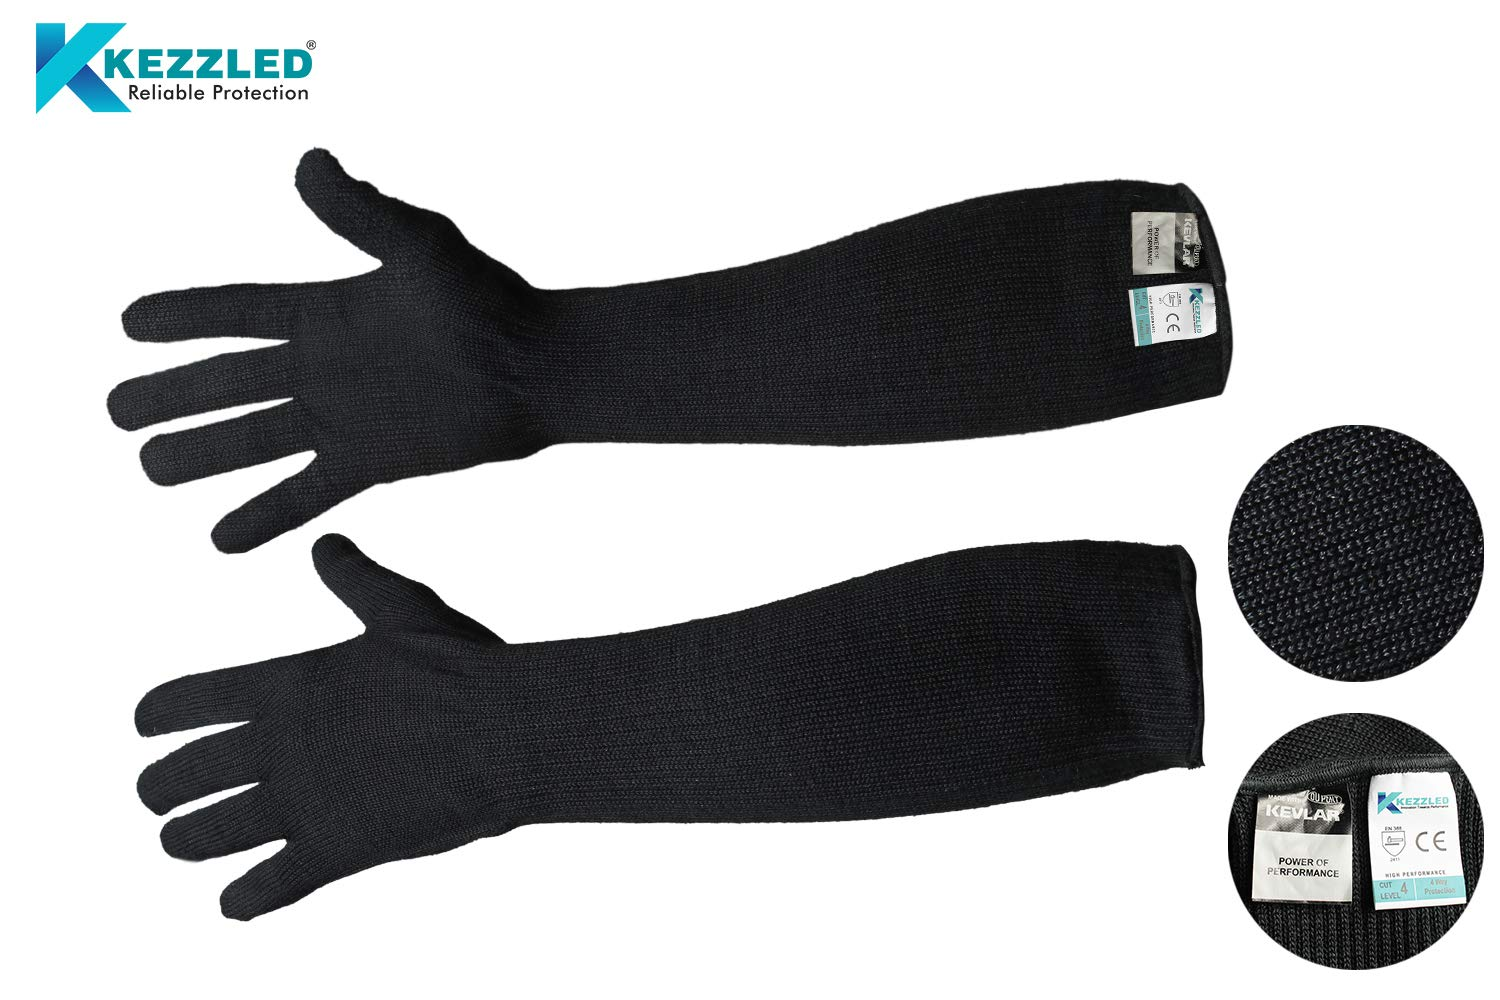 Cut/Scratch/Heat Resistance Designer Glove with Extended Arm Sleeve- Black (Made with Kevlar by DuPont) by KEZZLED (Image #7)